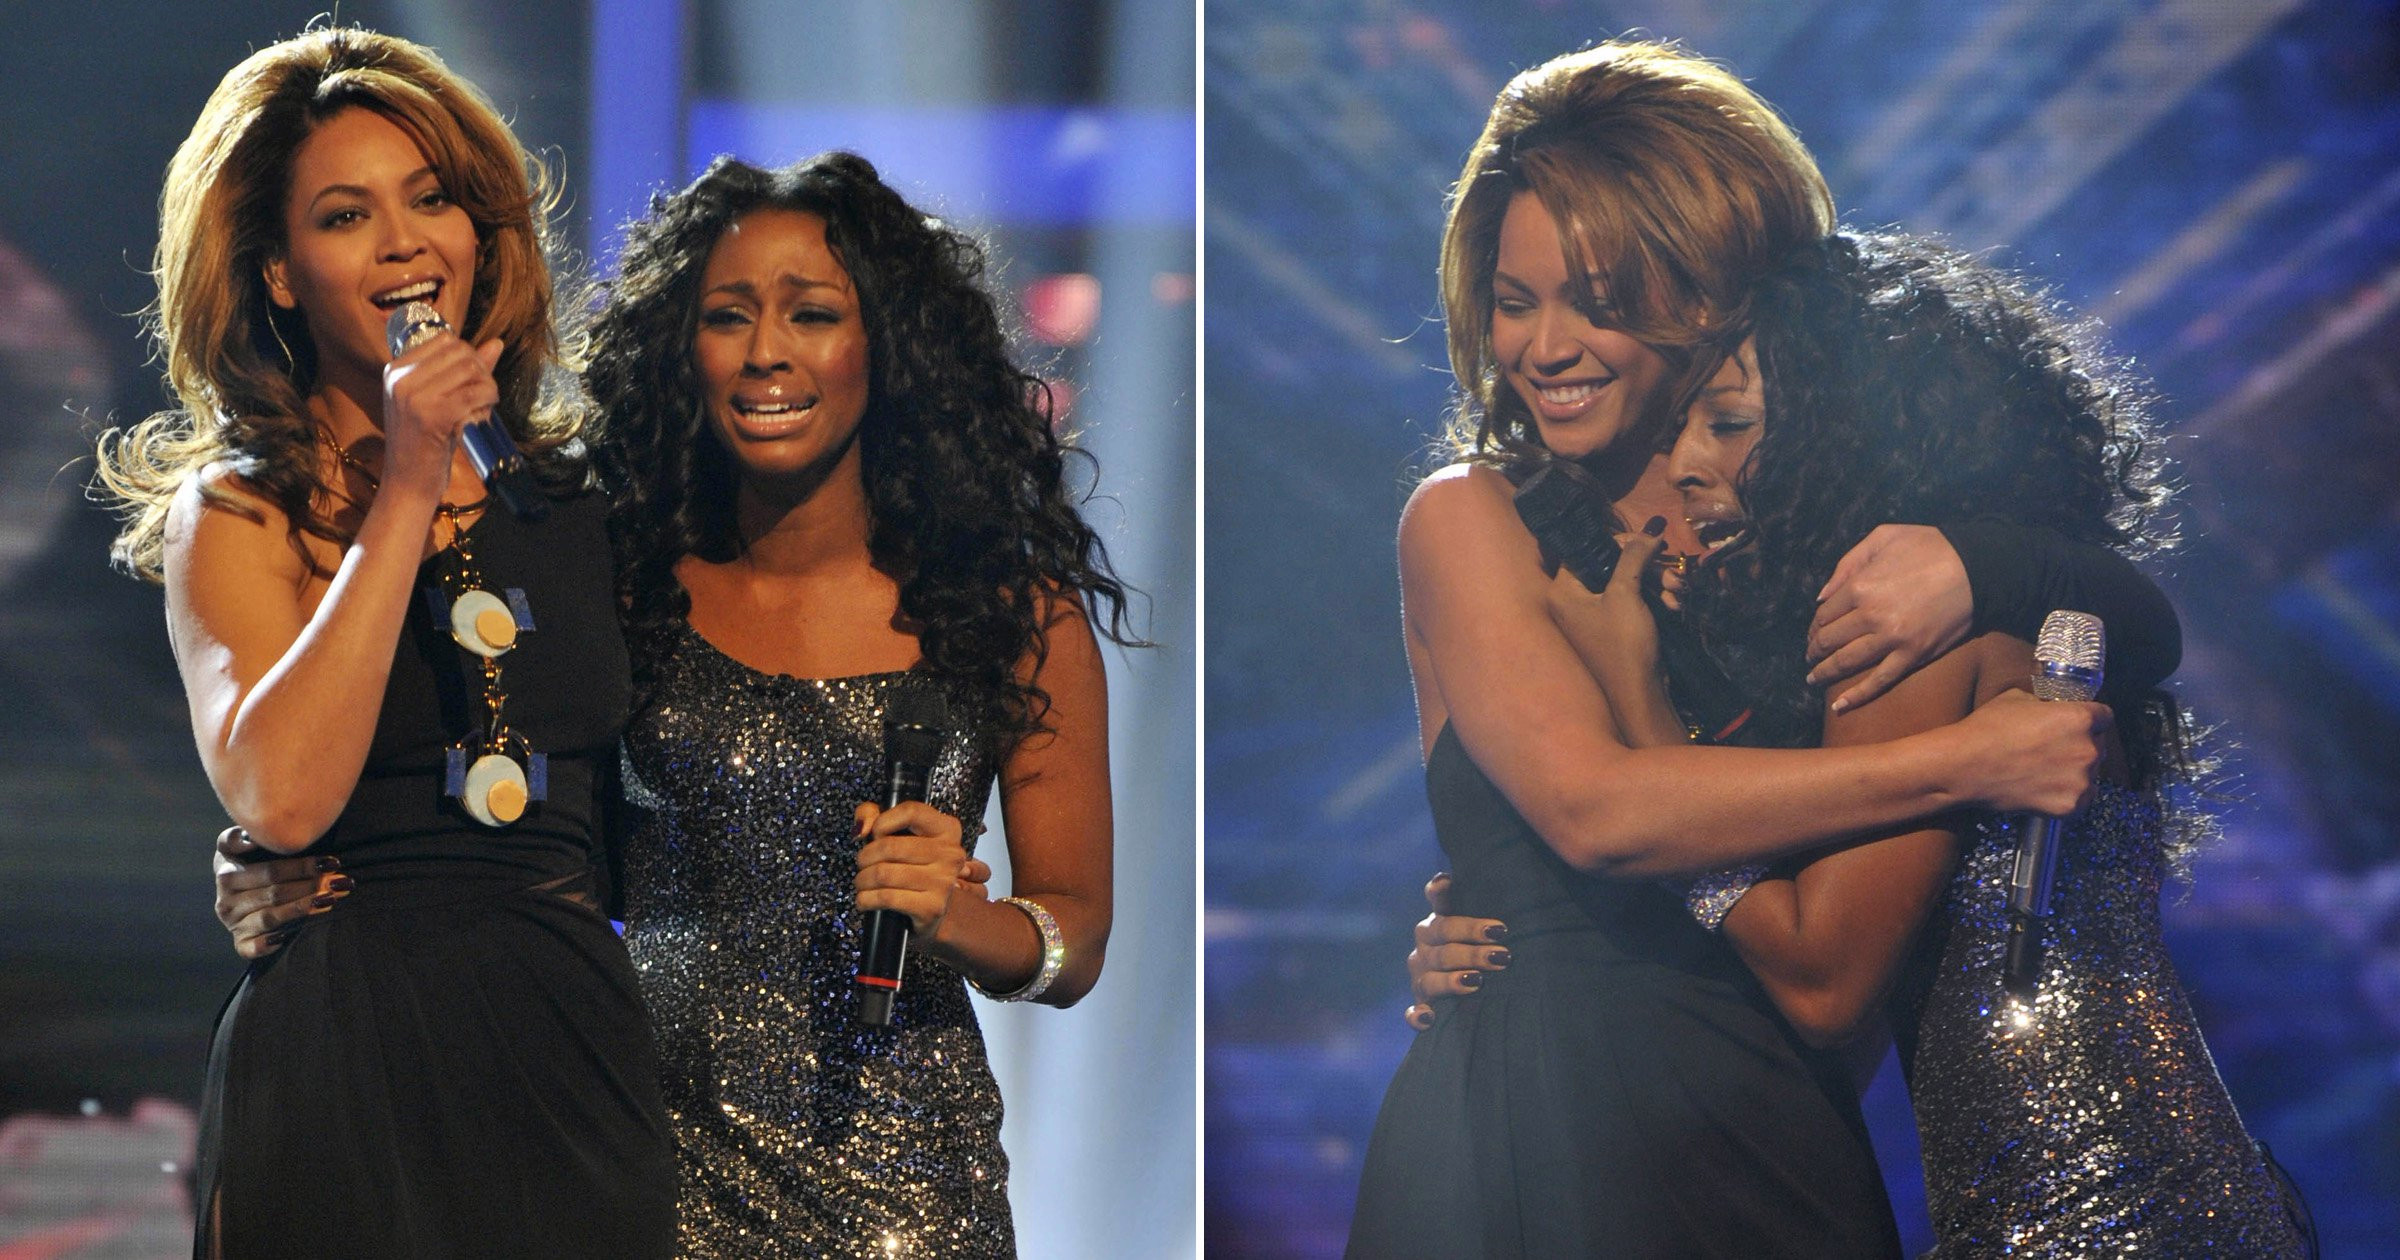 Alexandra Burke still in touch with 'humble' Beyonce after X Factor duet and reveals epic shock reunion: 'I got so flustered'